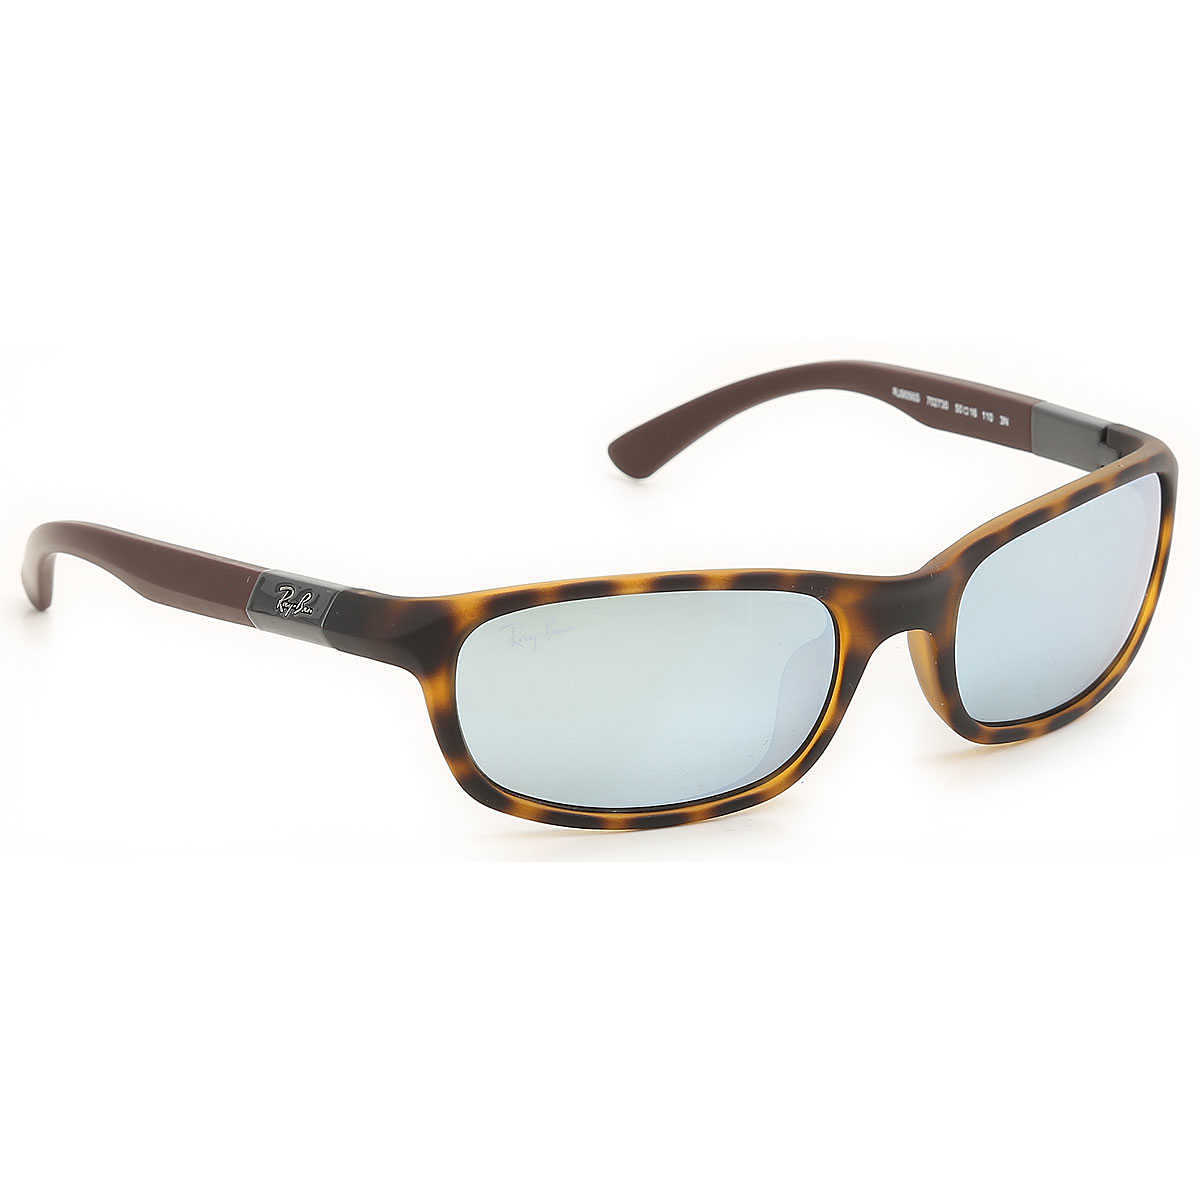 Ray Ban Junior Kids Sunglasses for Boys On Sale Matt Havana UK - GOOFASH - Mens SUNGLASSES